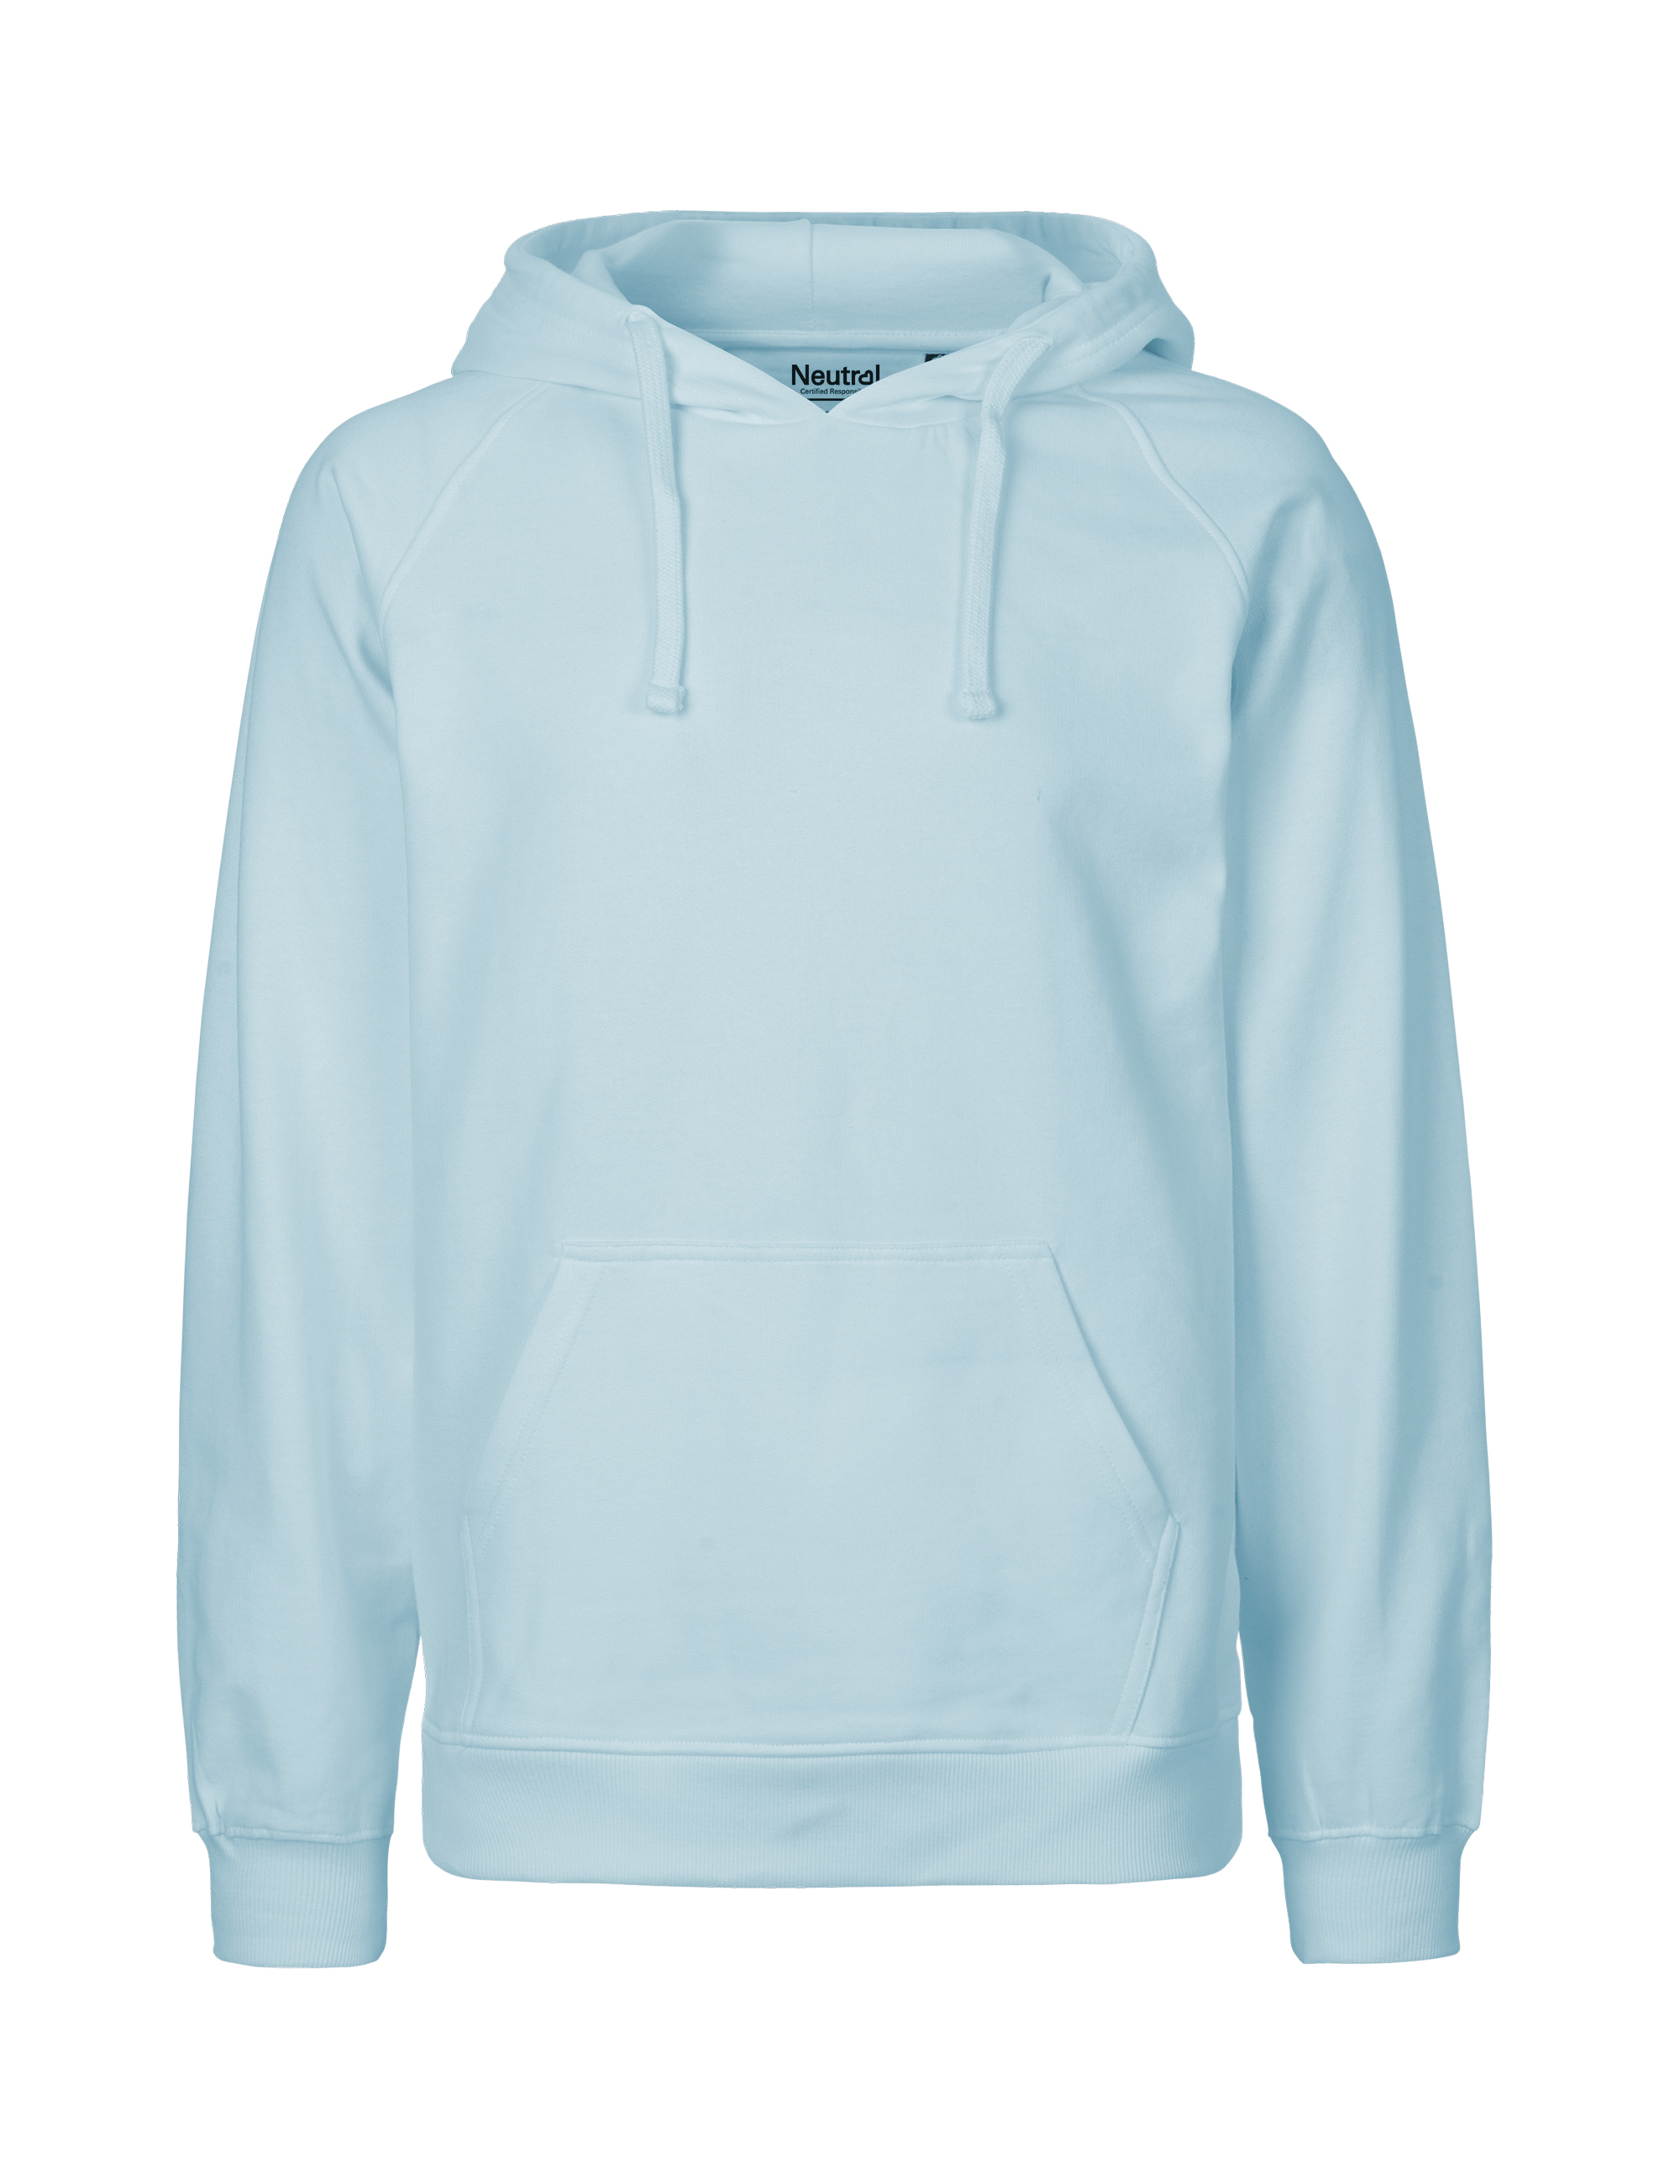 O63101 Mens Hoodie i Light Blue